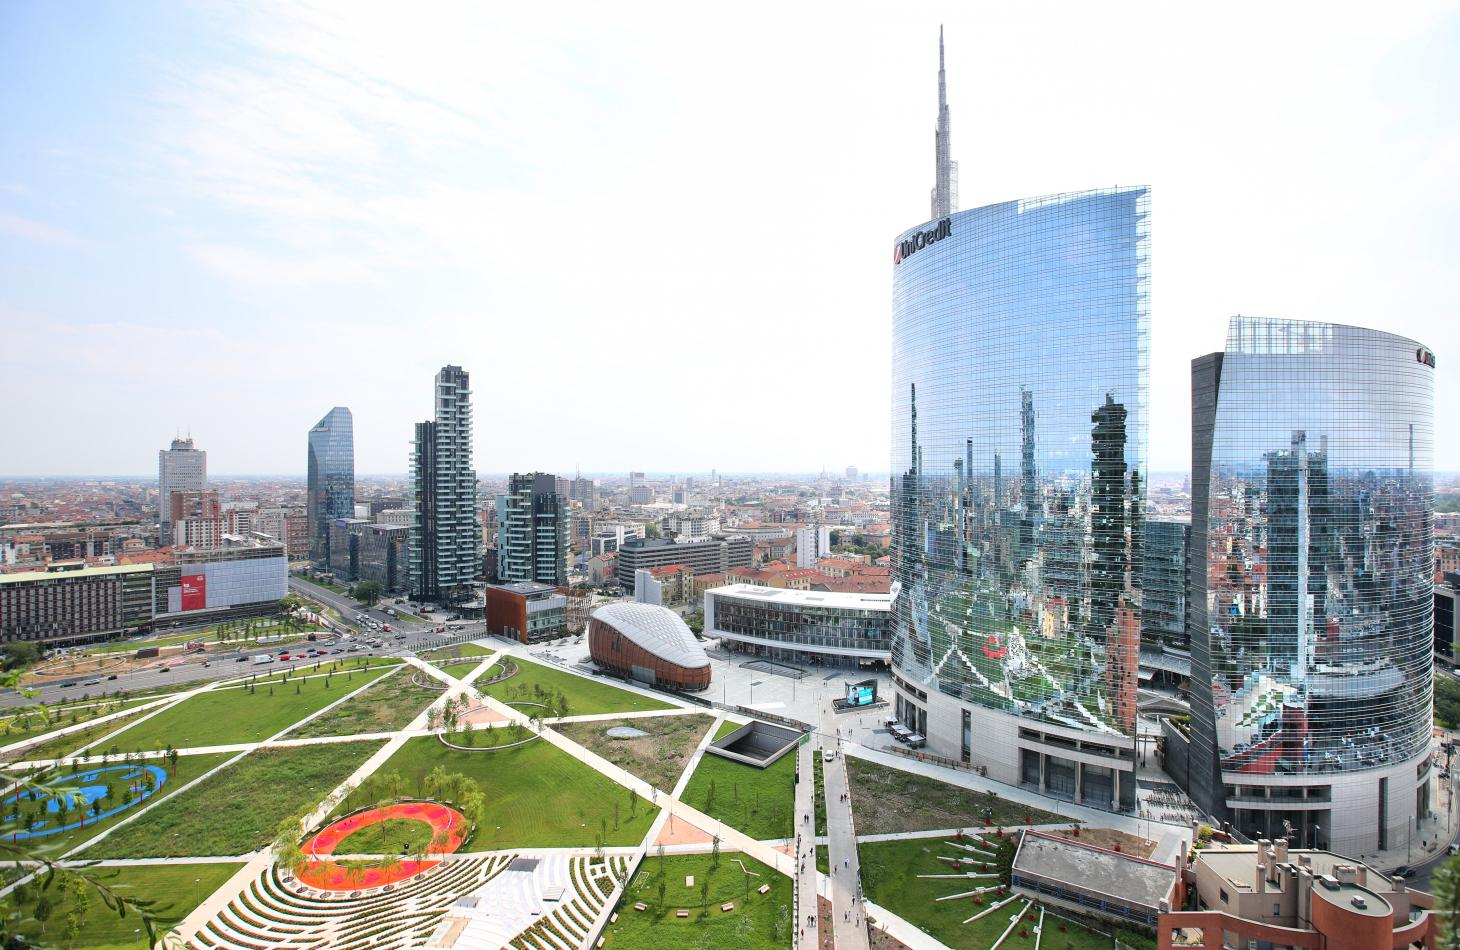 Milan's Porta Nuova urban success story